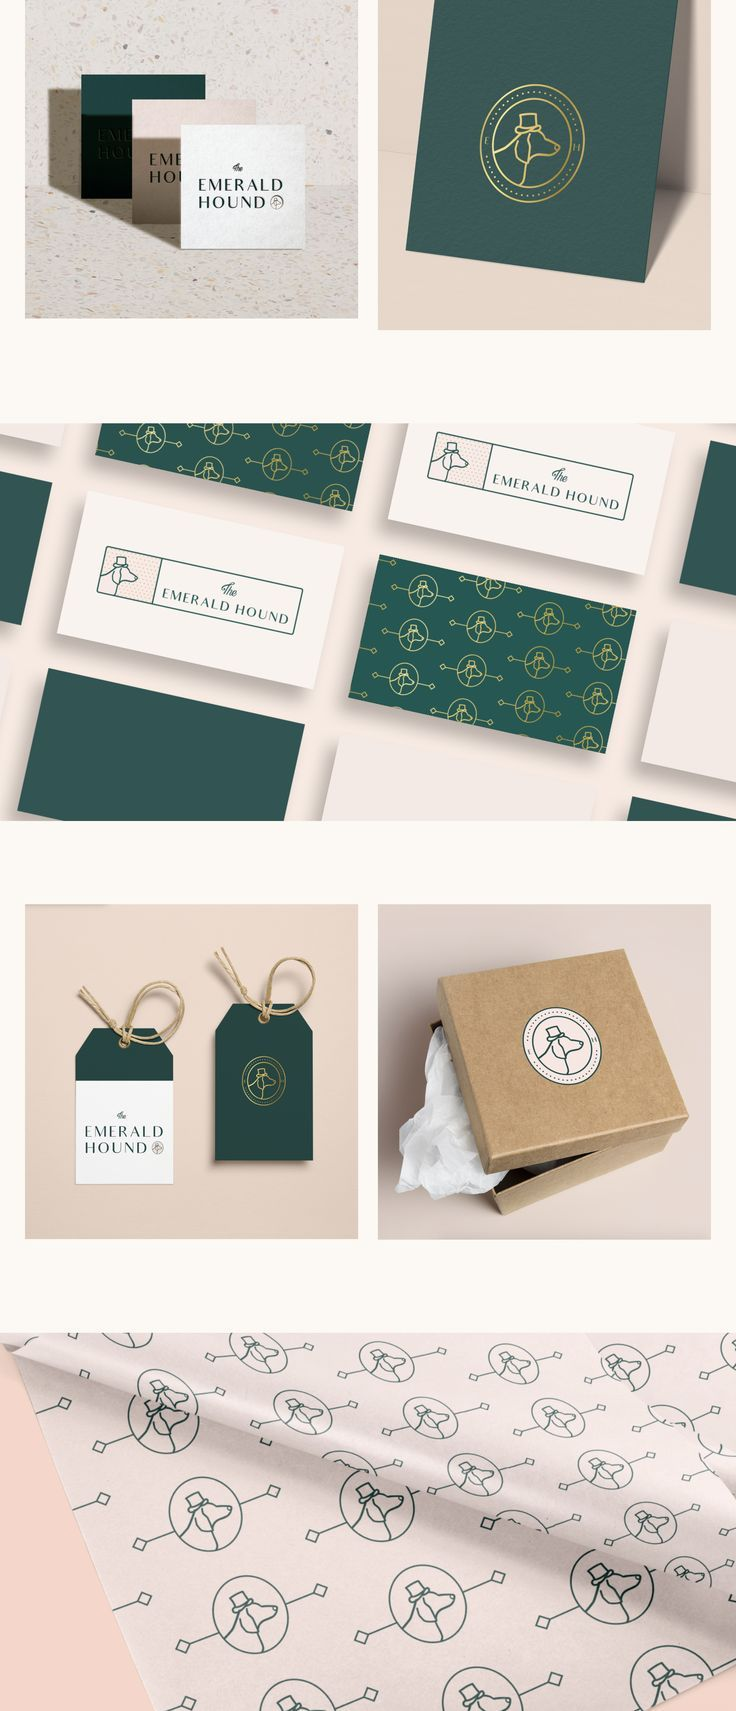 The Emerald Hound is a line of custom paper goods dedicated to incorporating a couple's pet into their wedding day. We worked to bring The Emerald Hound's quirky and fun brand to life through a full brand identity design, including a custom pattern design and print collateral. | feminine brand design, design inspiration #branding #designinspiration